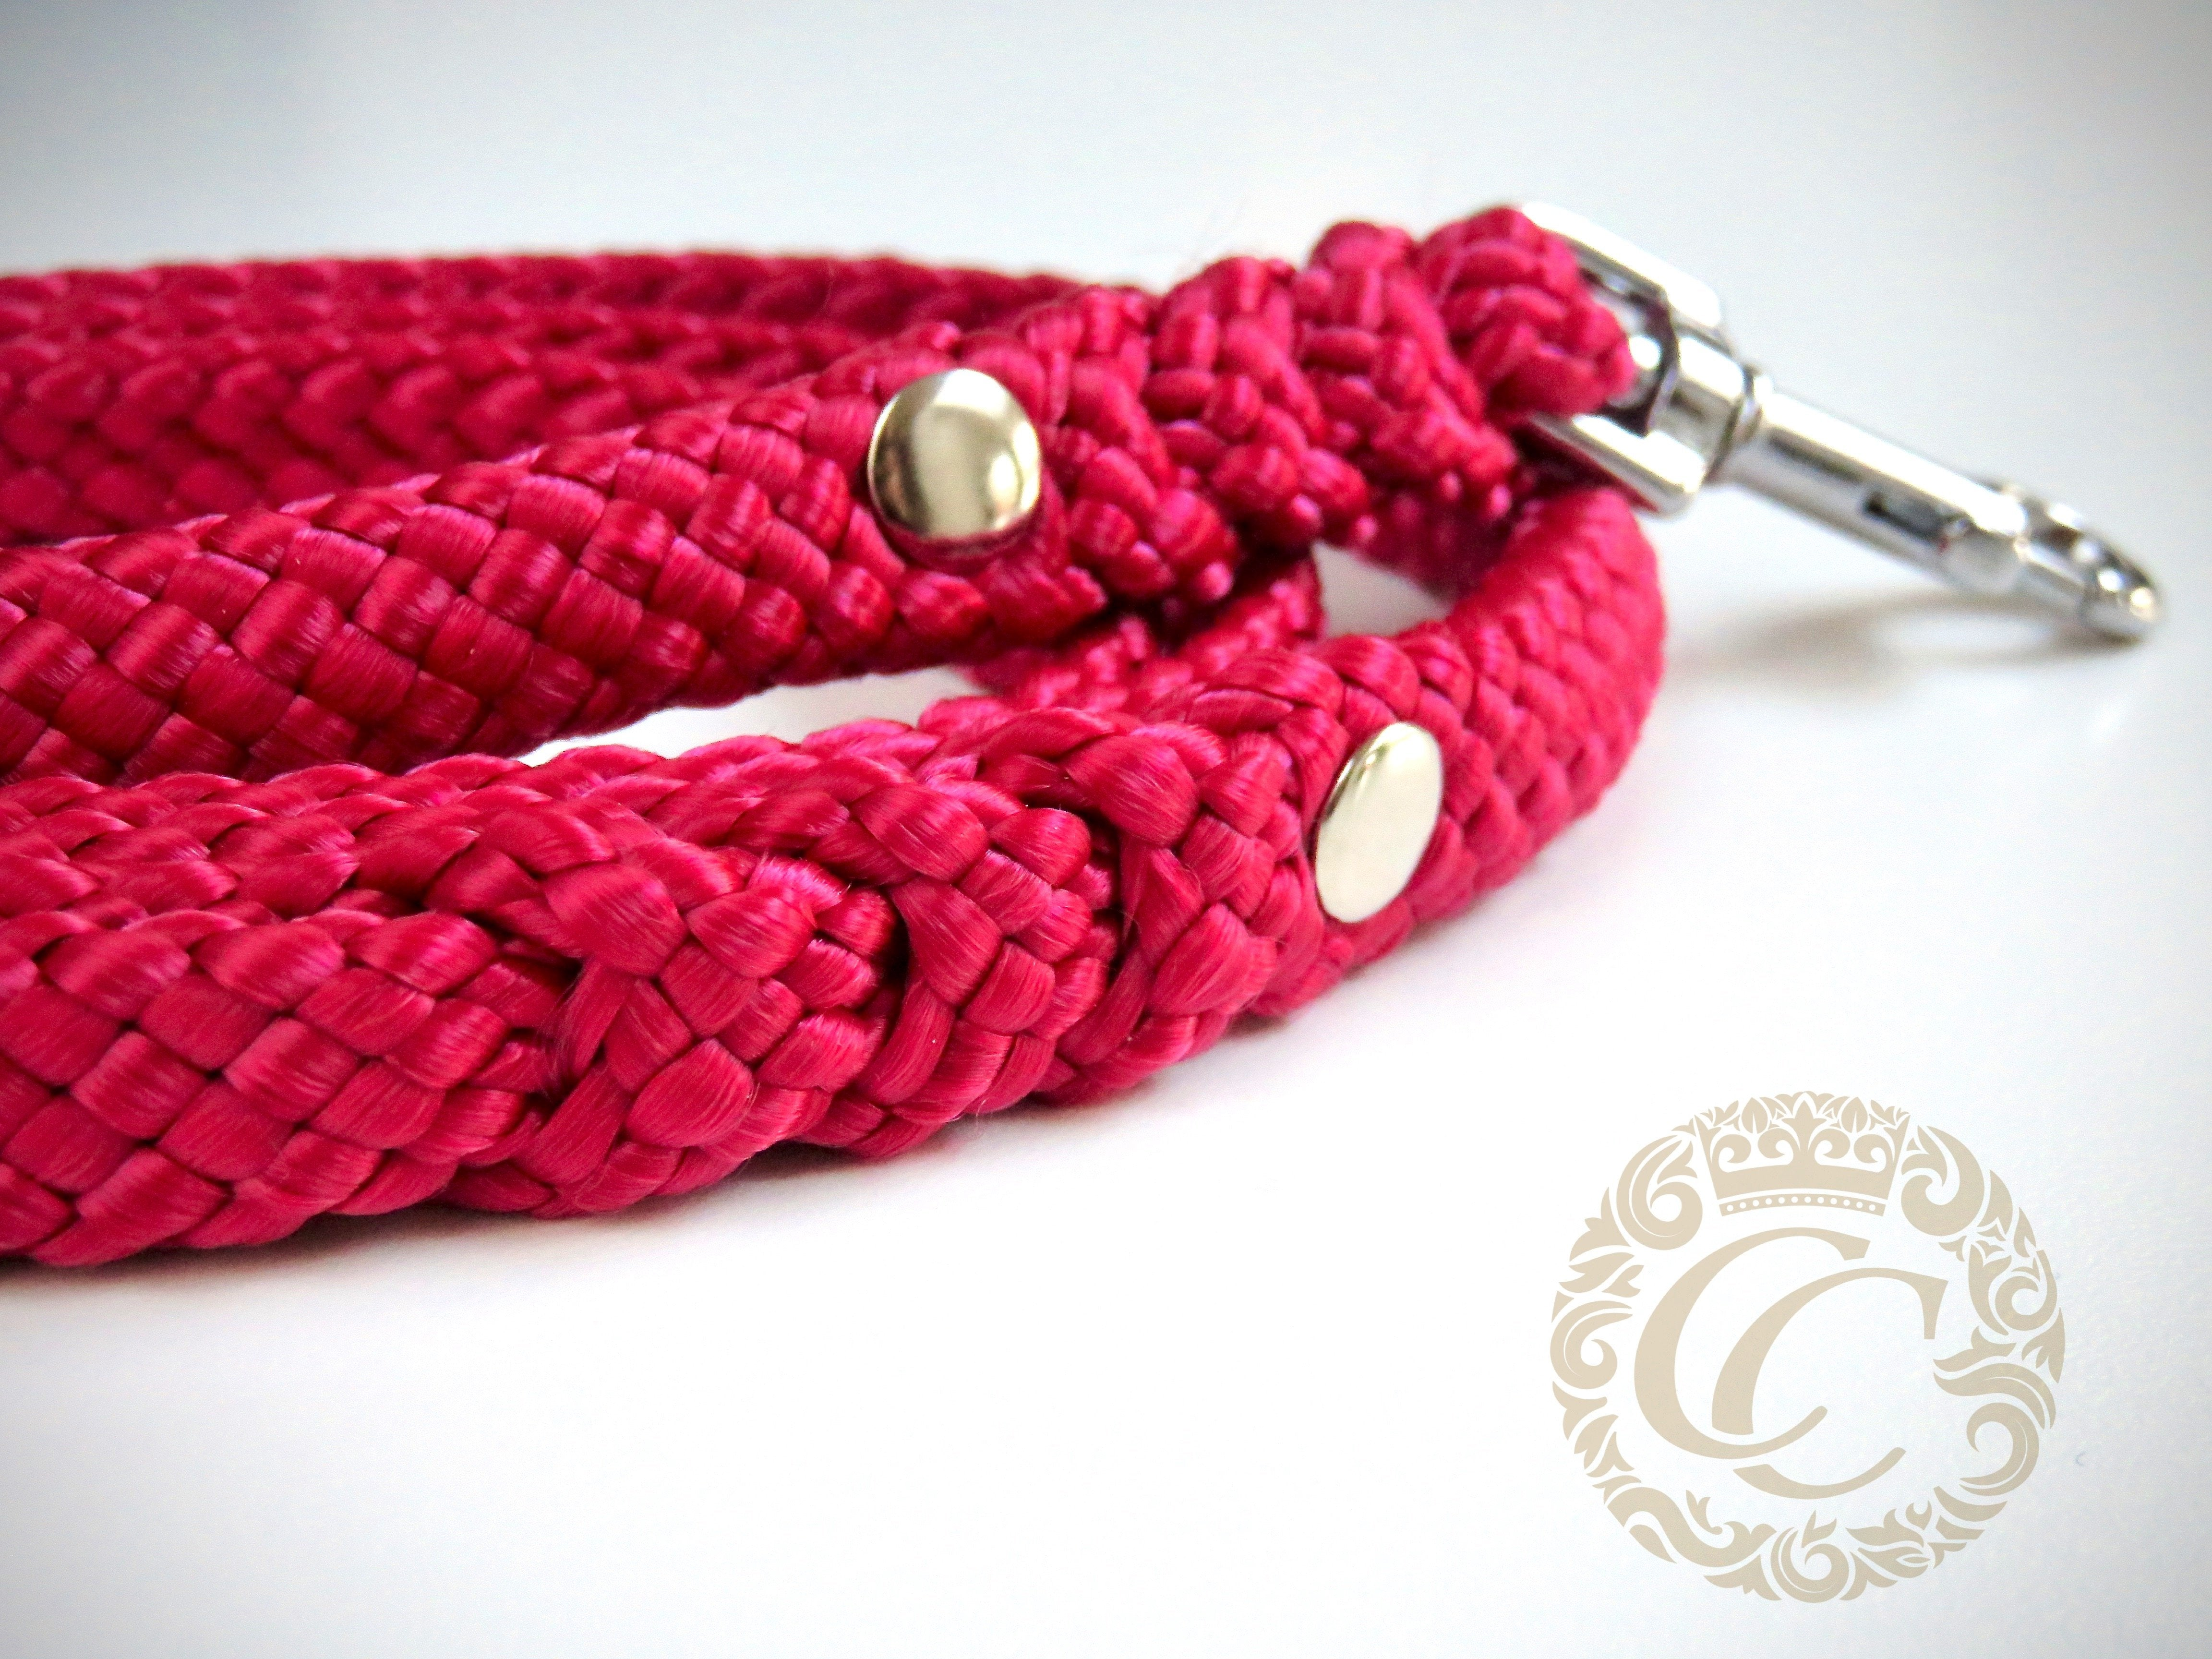 Handmade dog leashes CollarCrafts / paracord dog leash